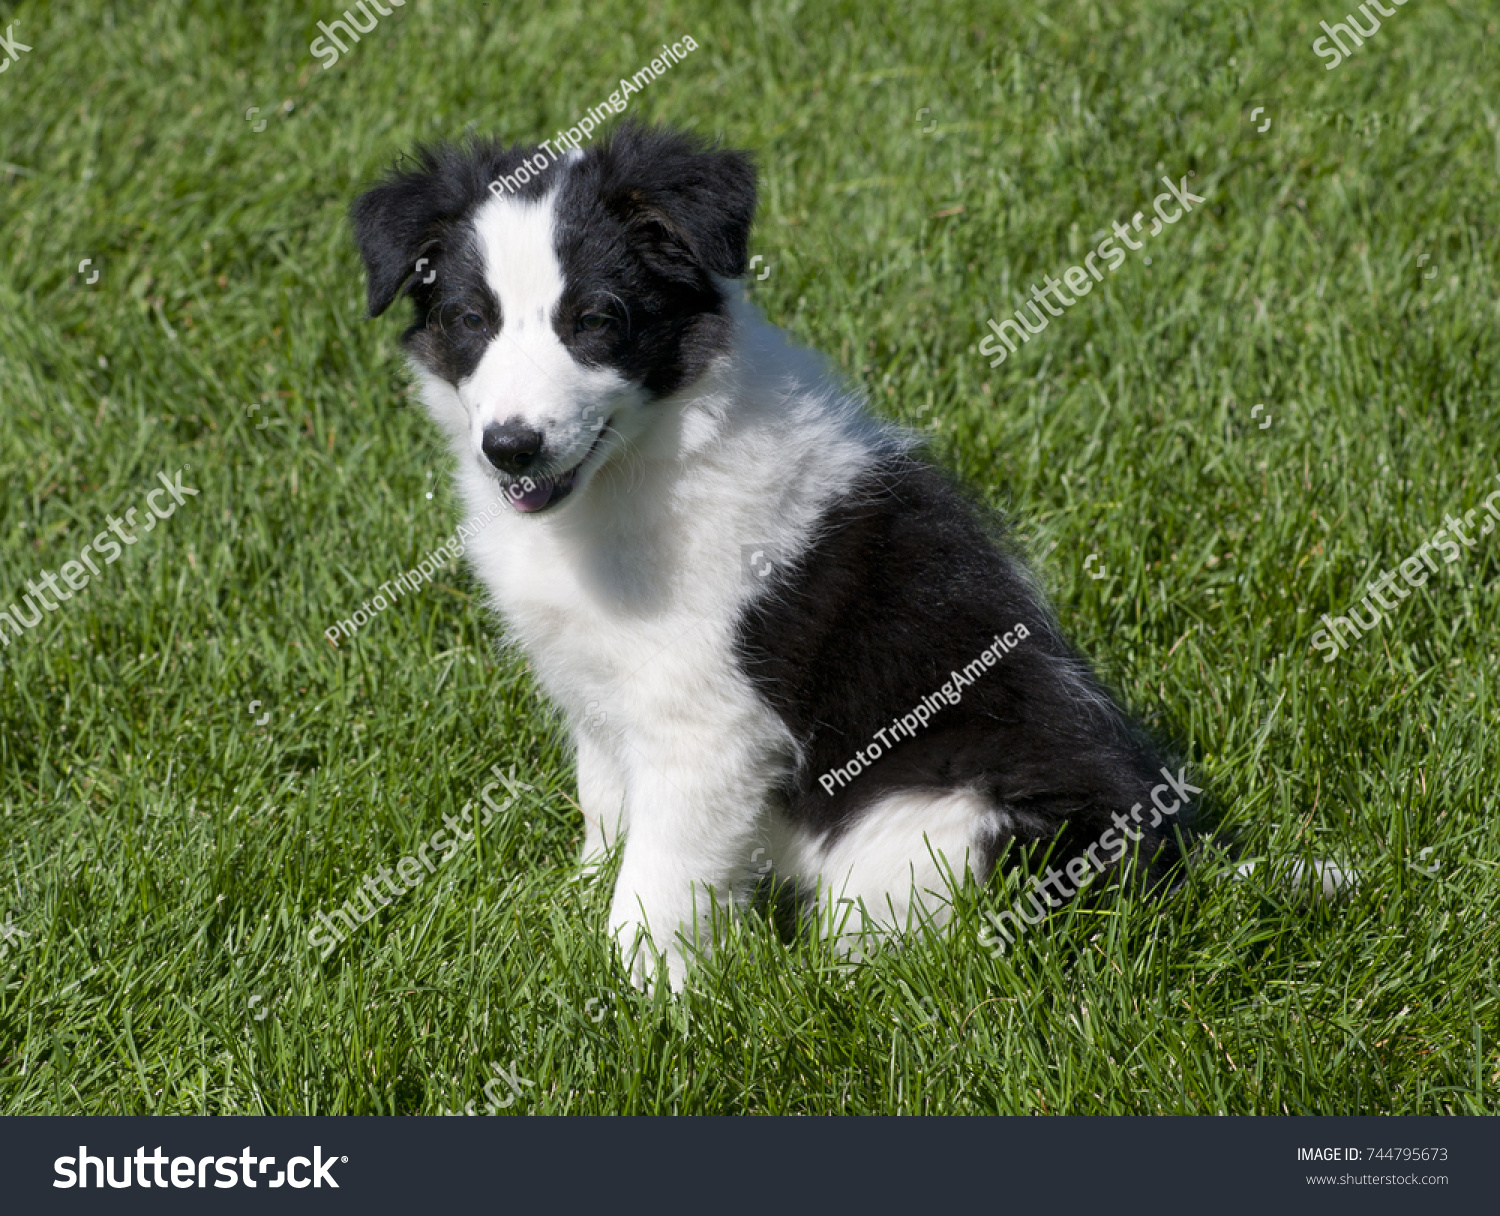 Black and white border collie puppies